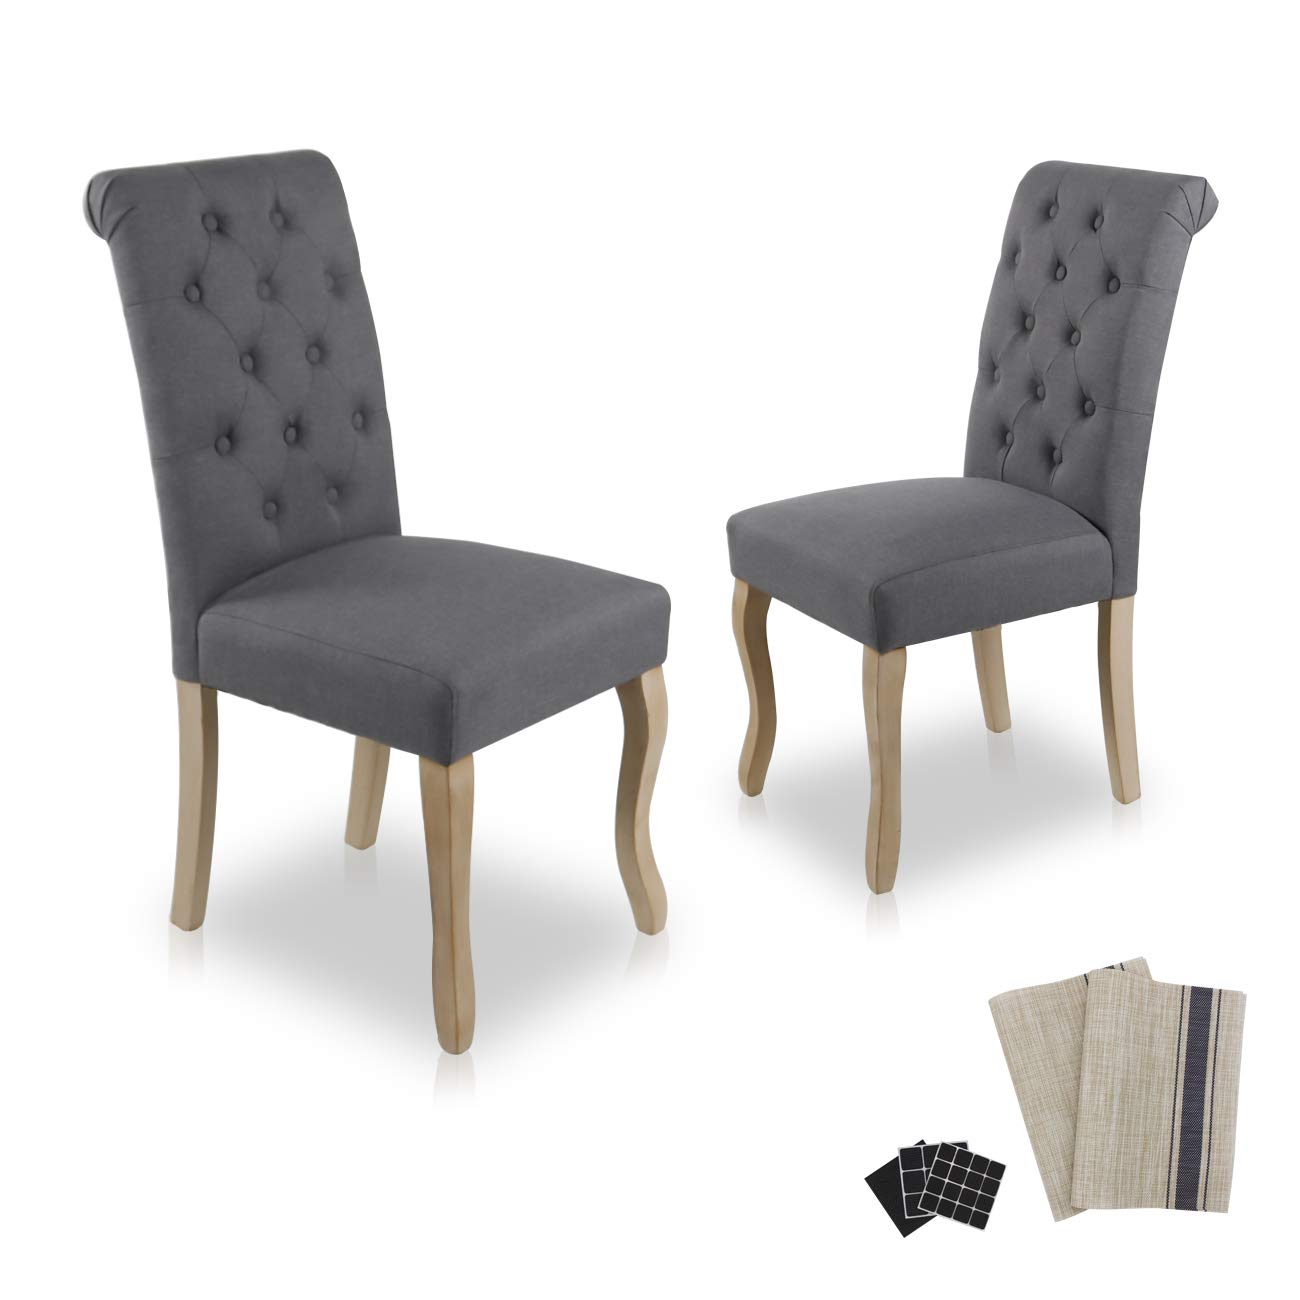 Exceptional Amazon.com   Dinner Chairs Upholstered Accent Fabric Dining Chair With  Solid Wood Legs For Kitchen Living Room Set Of 2 (Grey)   Chairs